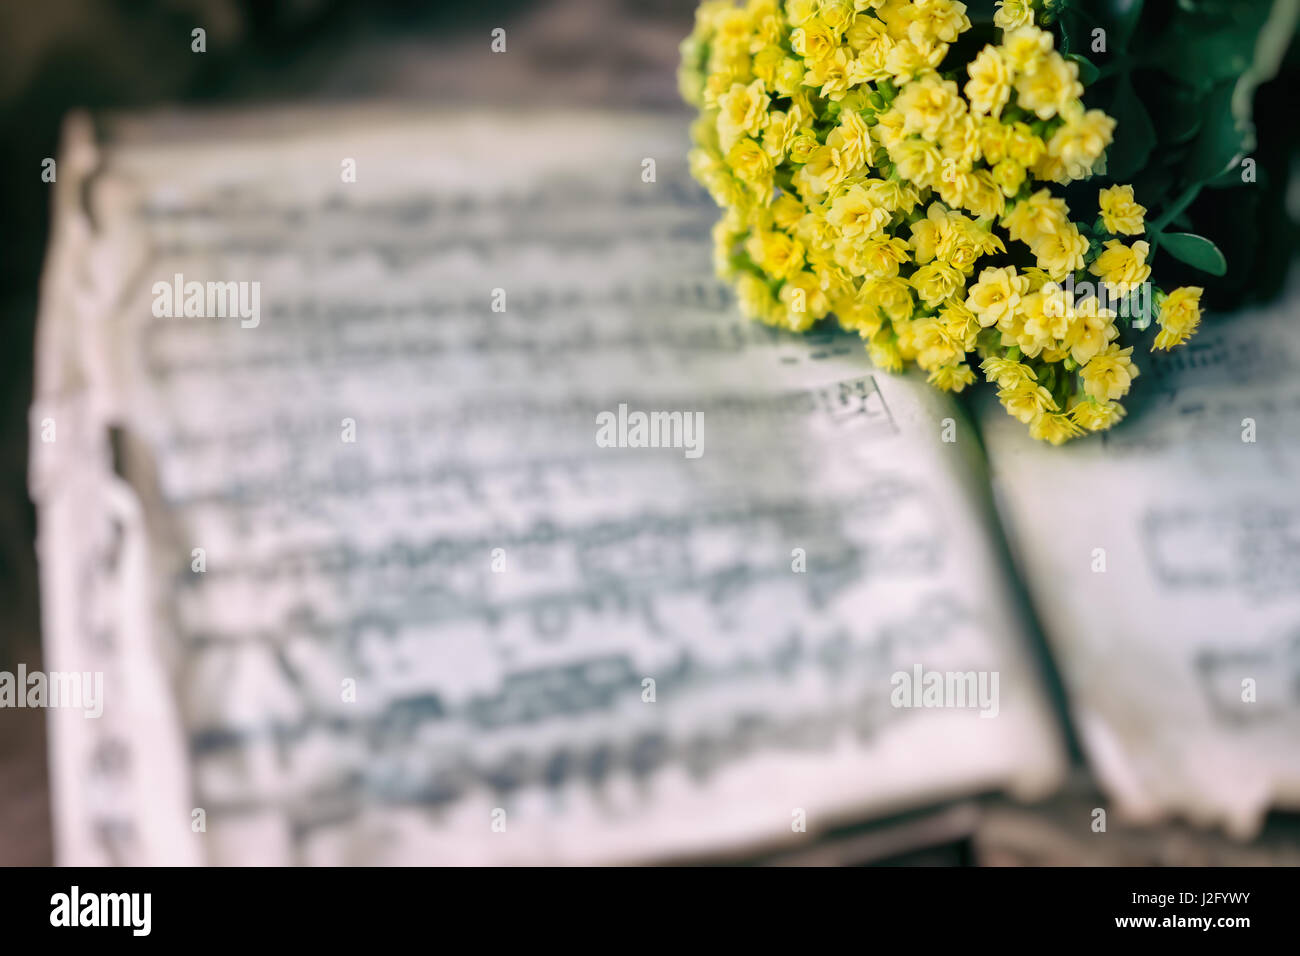 Abstract vintage music background yellow flowers on yellowed old music book with worn paper. Concept of romantic - Stock Image